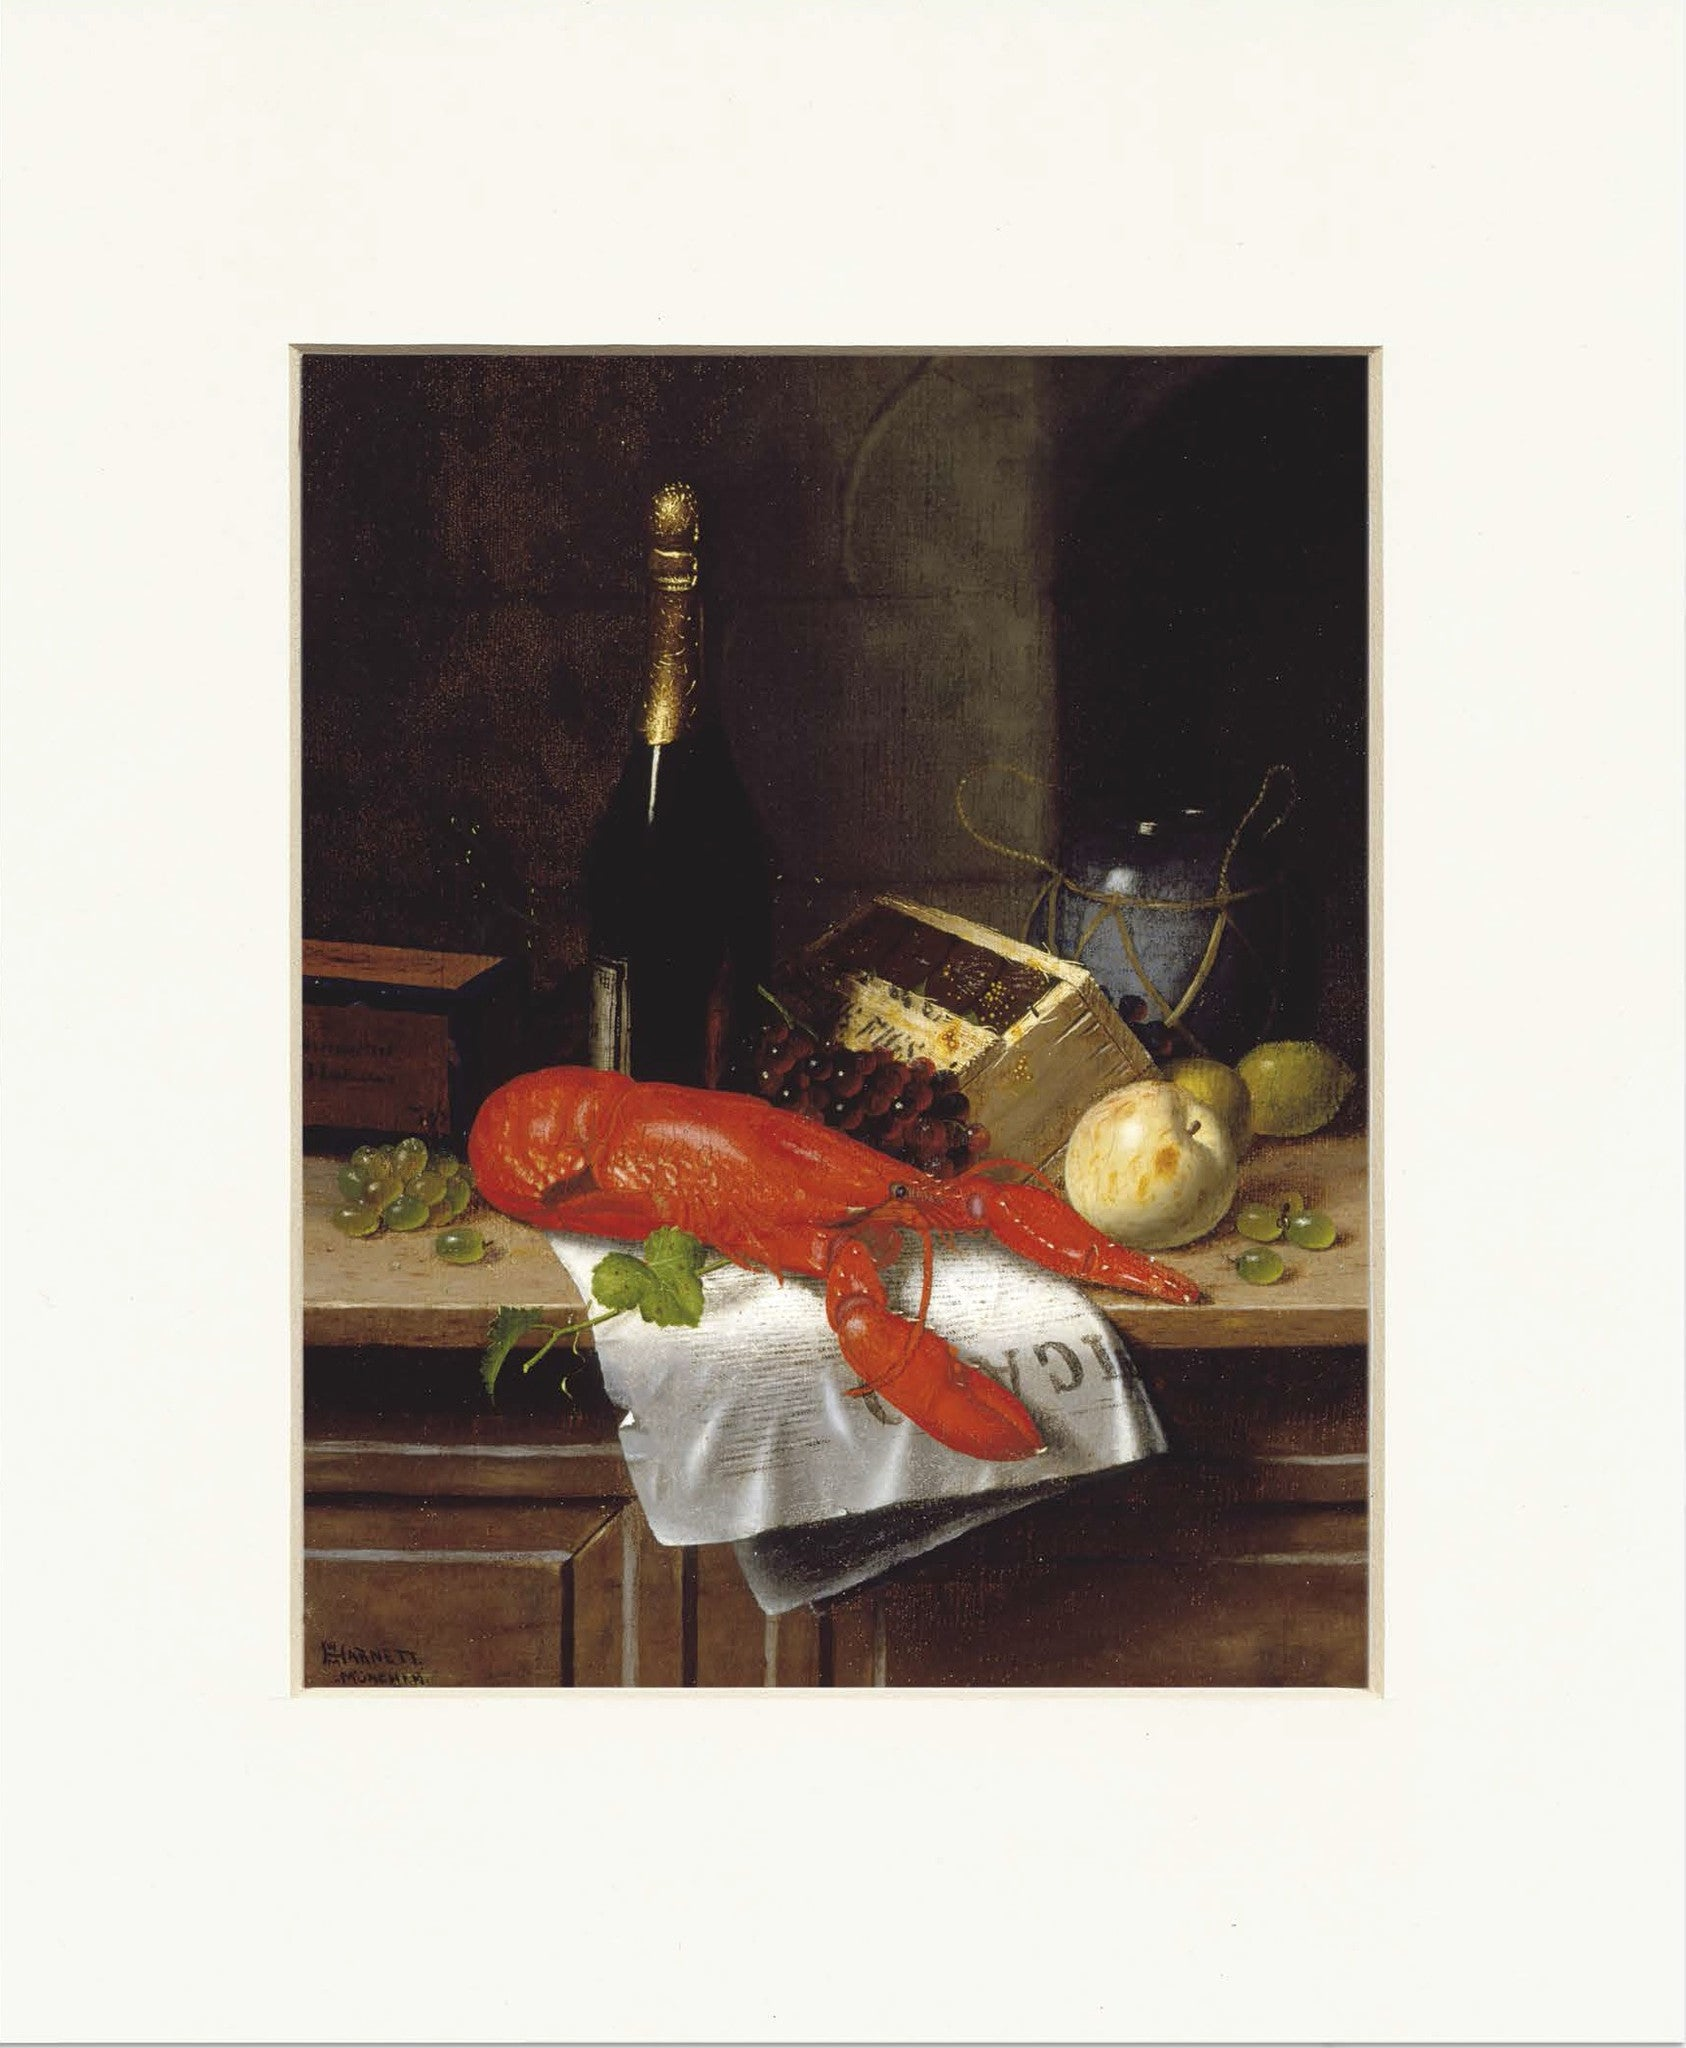 "Lobster and Le Figaro 11"" x 14""  Matted Print"